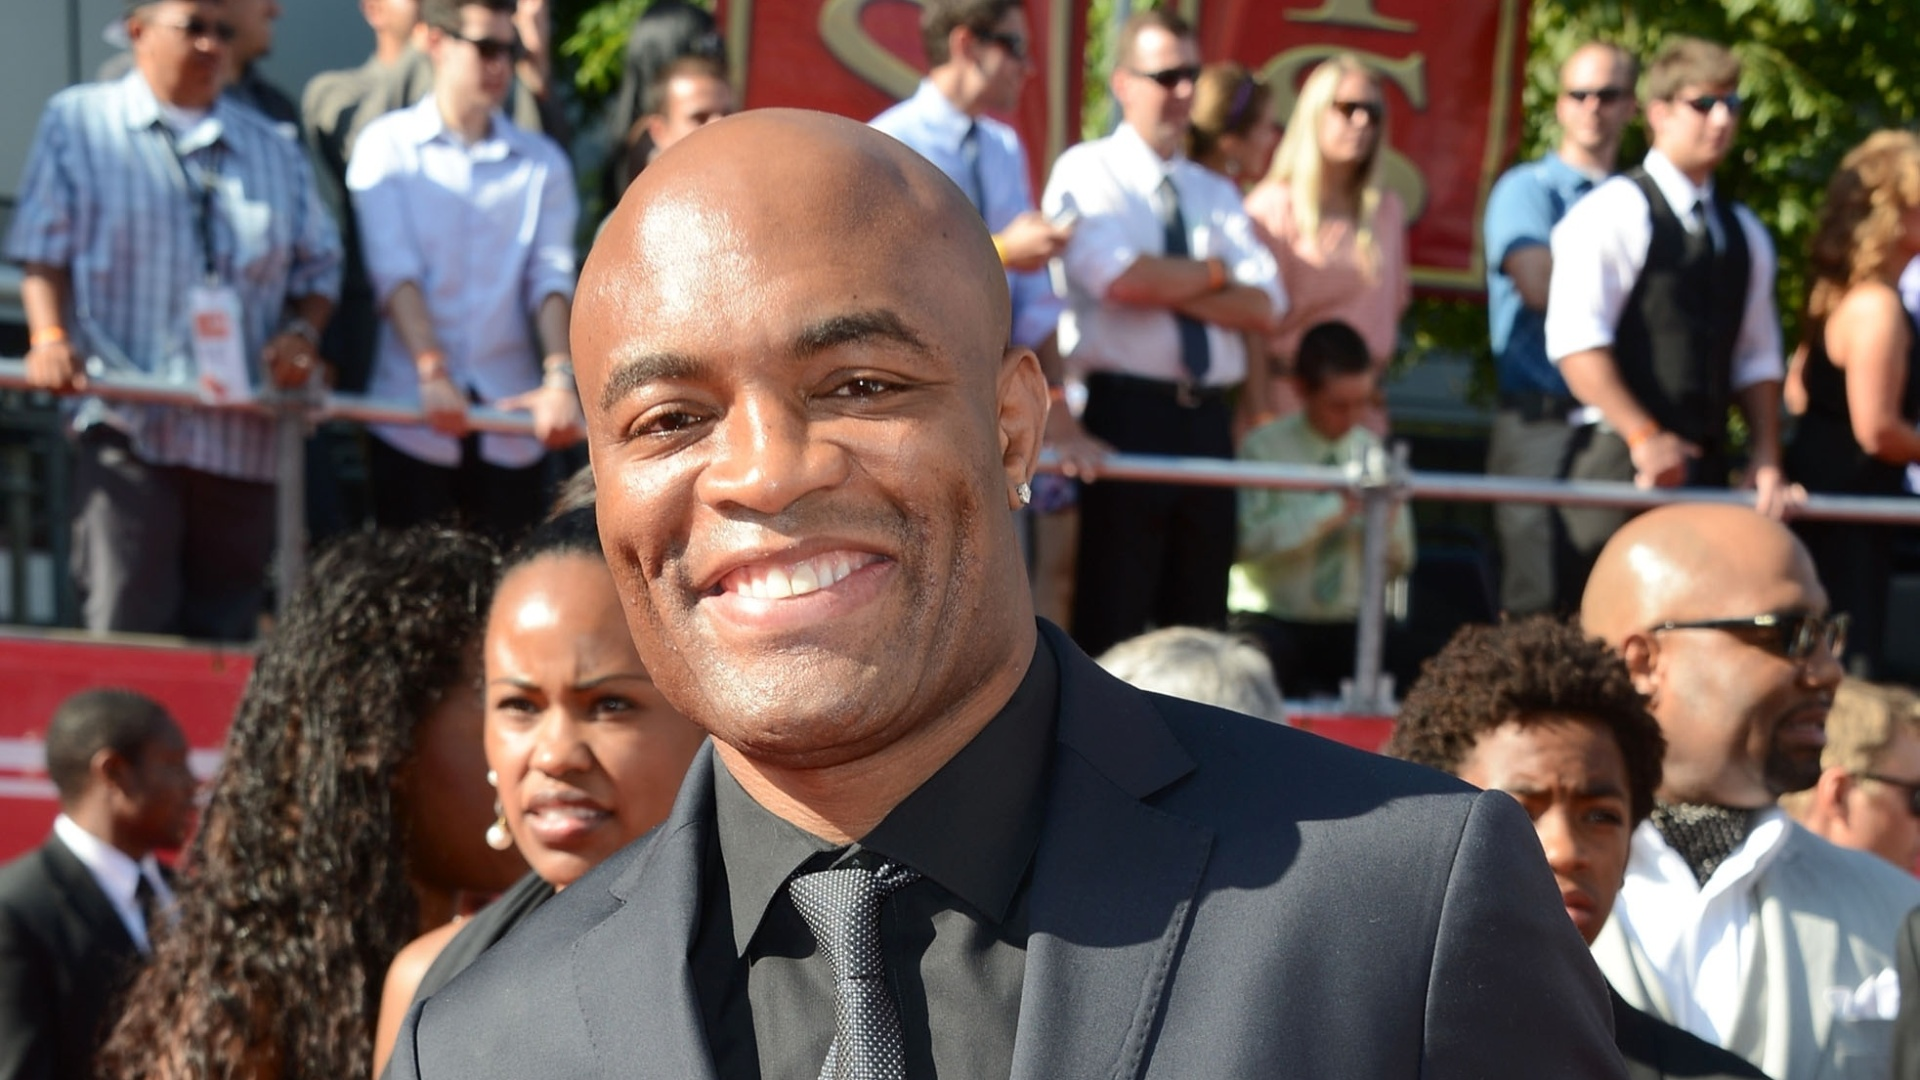 Anderson Silva participa da premiao ESPY Awards nos EUA, feita pelo canal ESPN; brasileiro concorreu a melhor lutador, mas Floyd Mayweather, do boxe, faturou